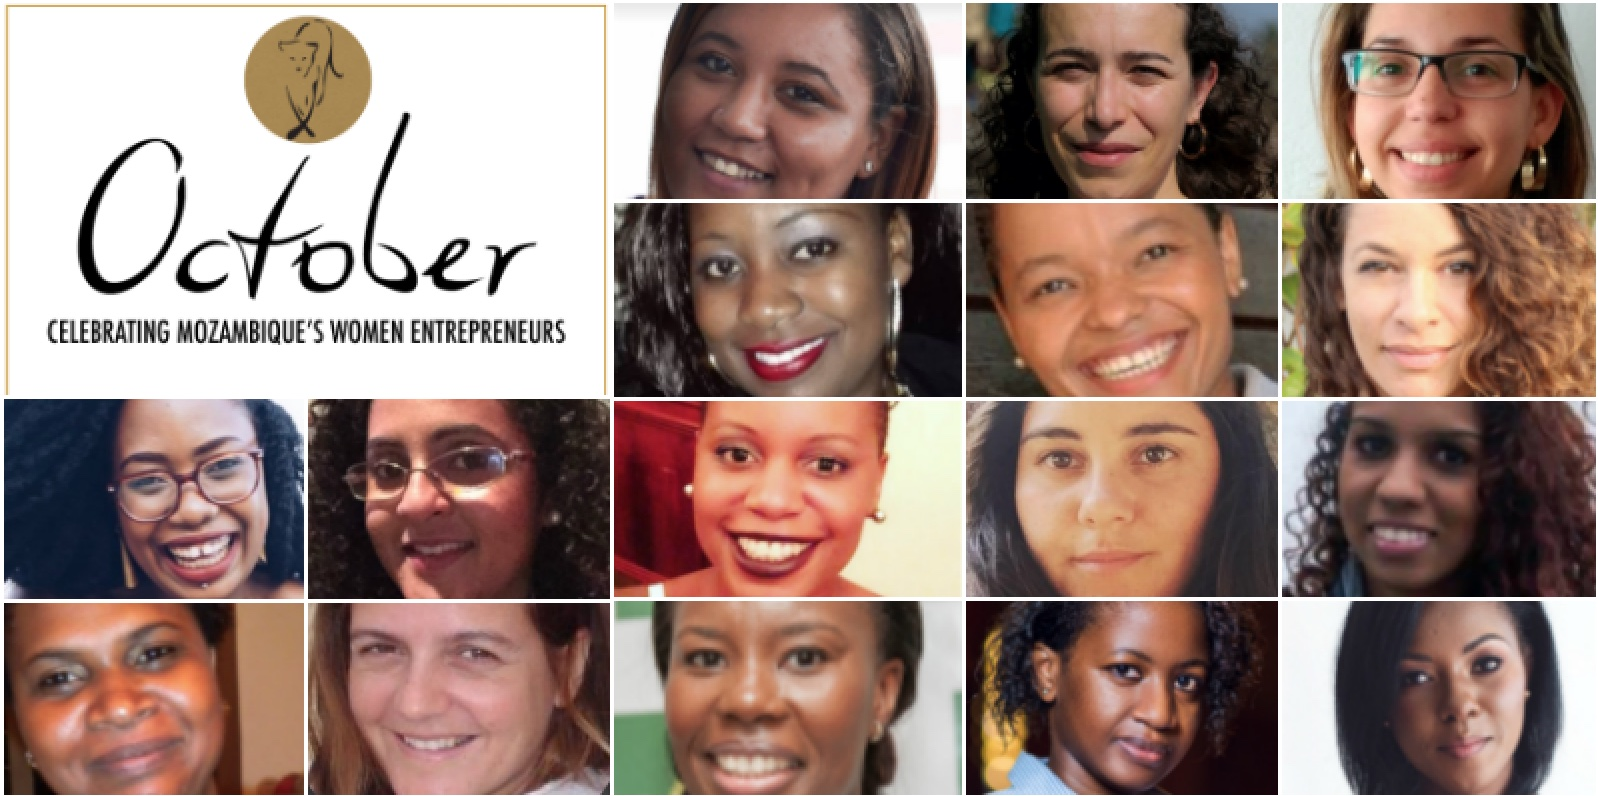 Mozambique_Women_Entrepreneurs_Collage.jpg